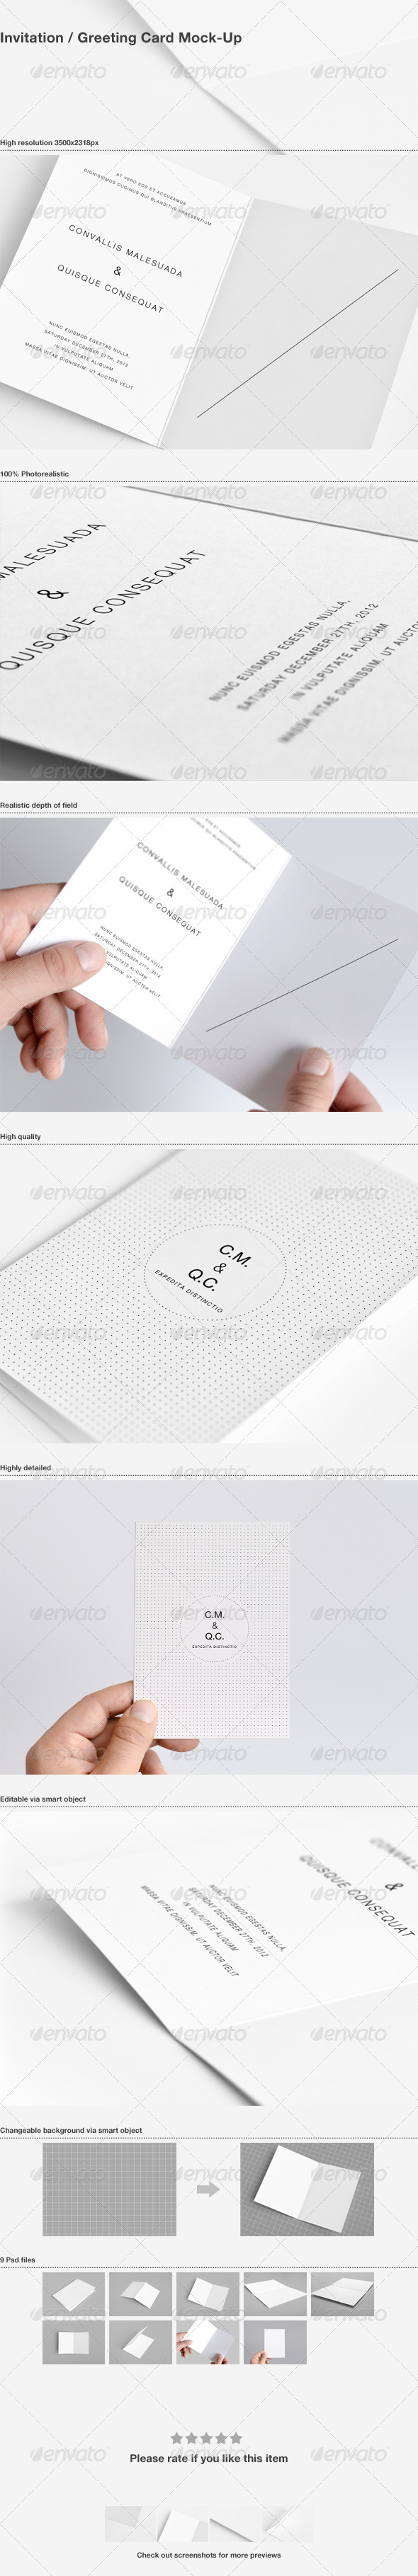 GraphicRiver Invitation Greeting Card Mock-Up 3601011